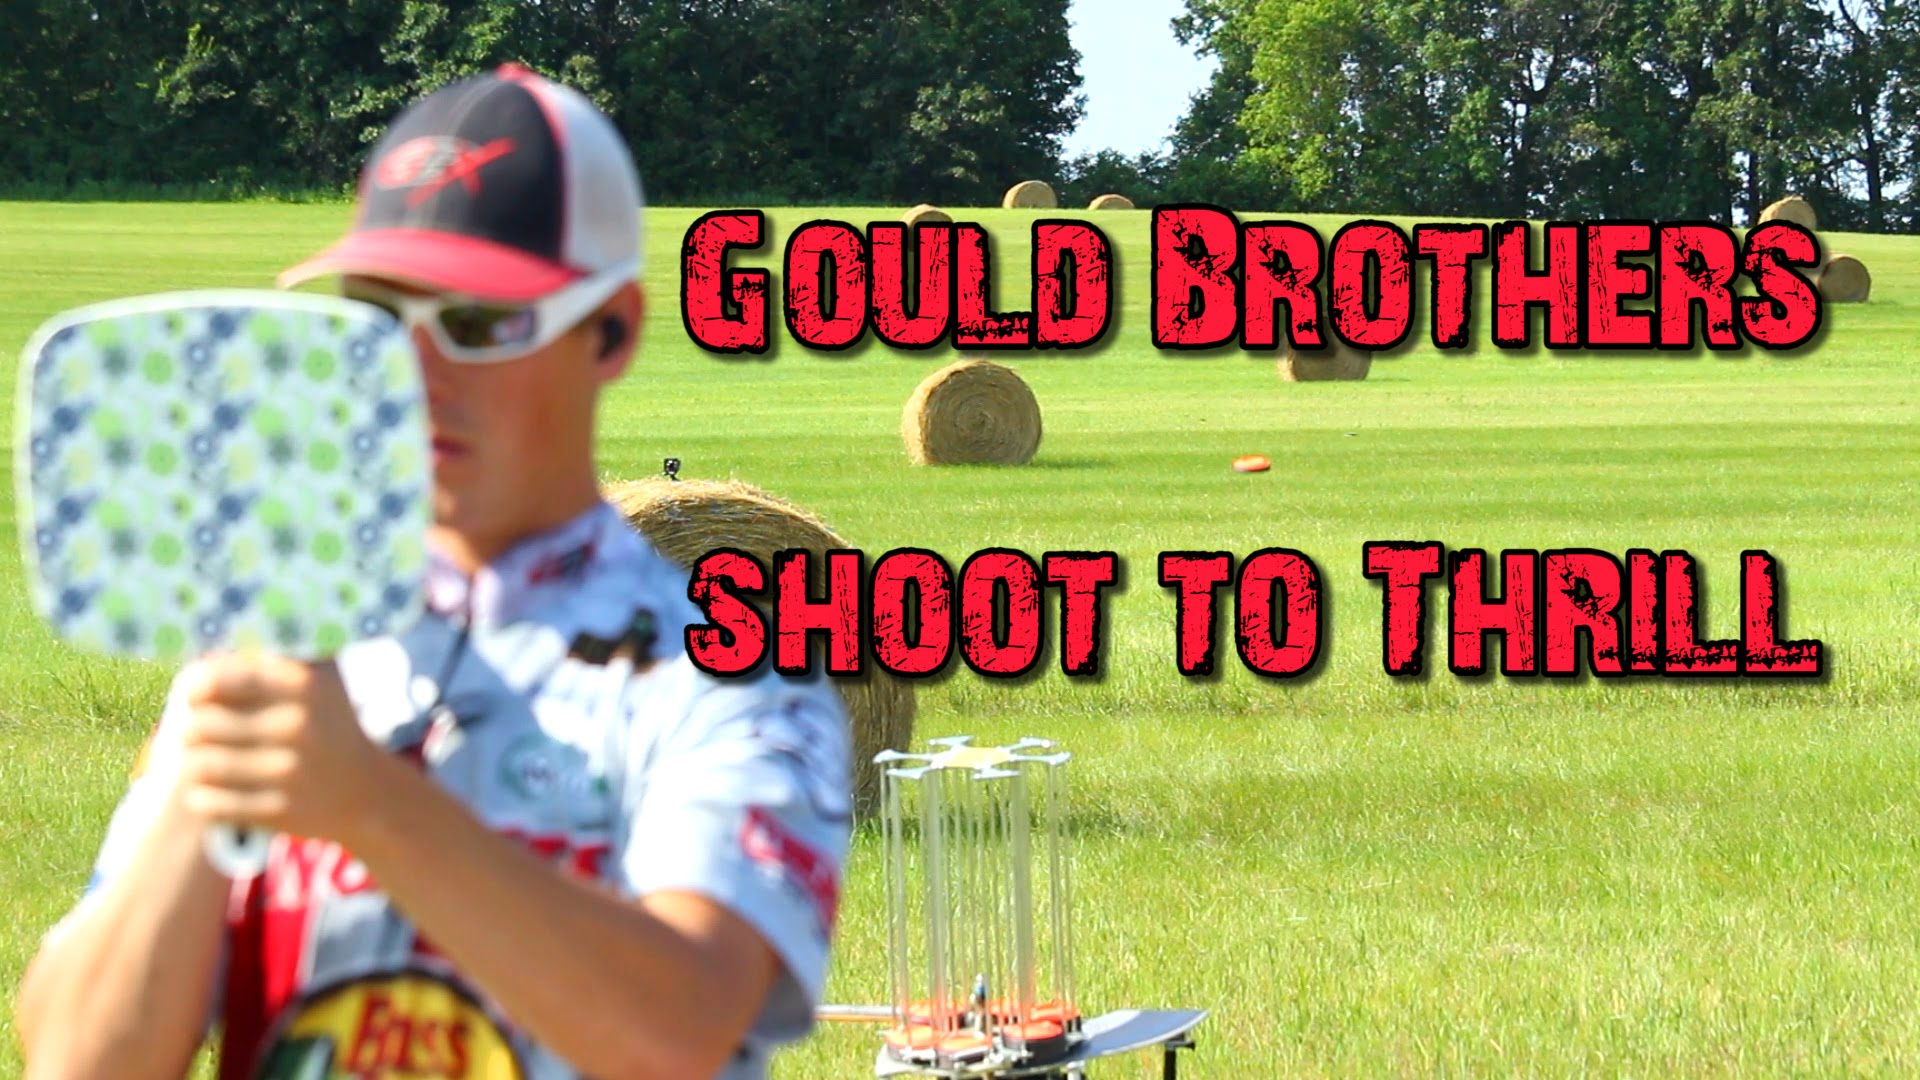 Gould Brothers Shoot To Thrill - Starting January 2016